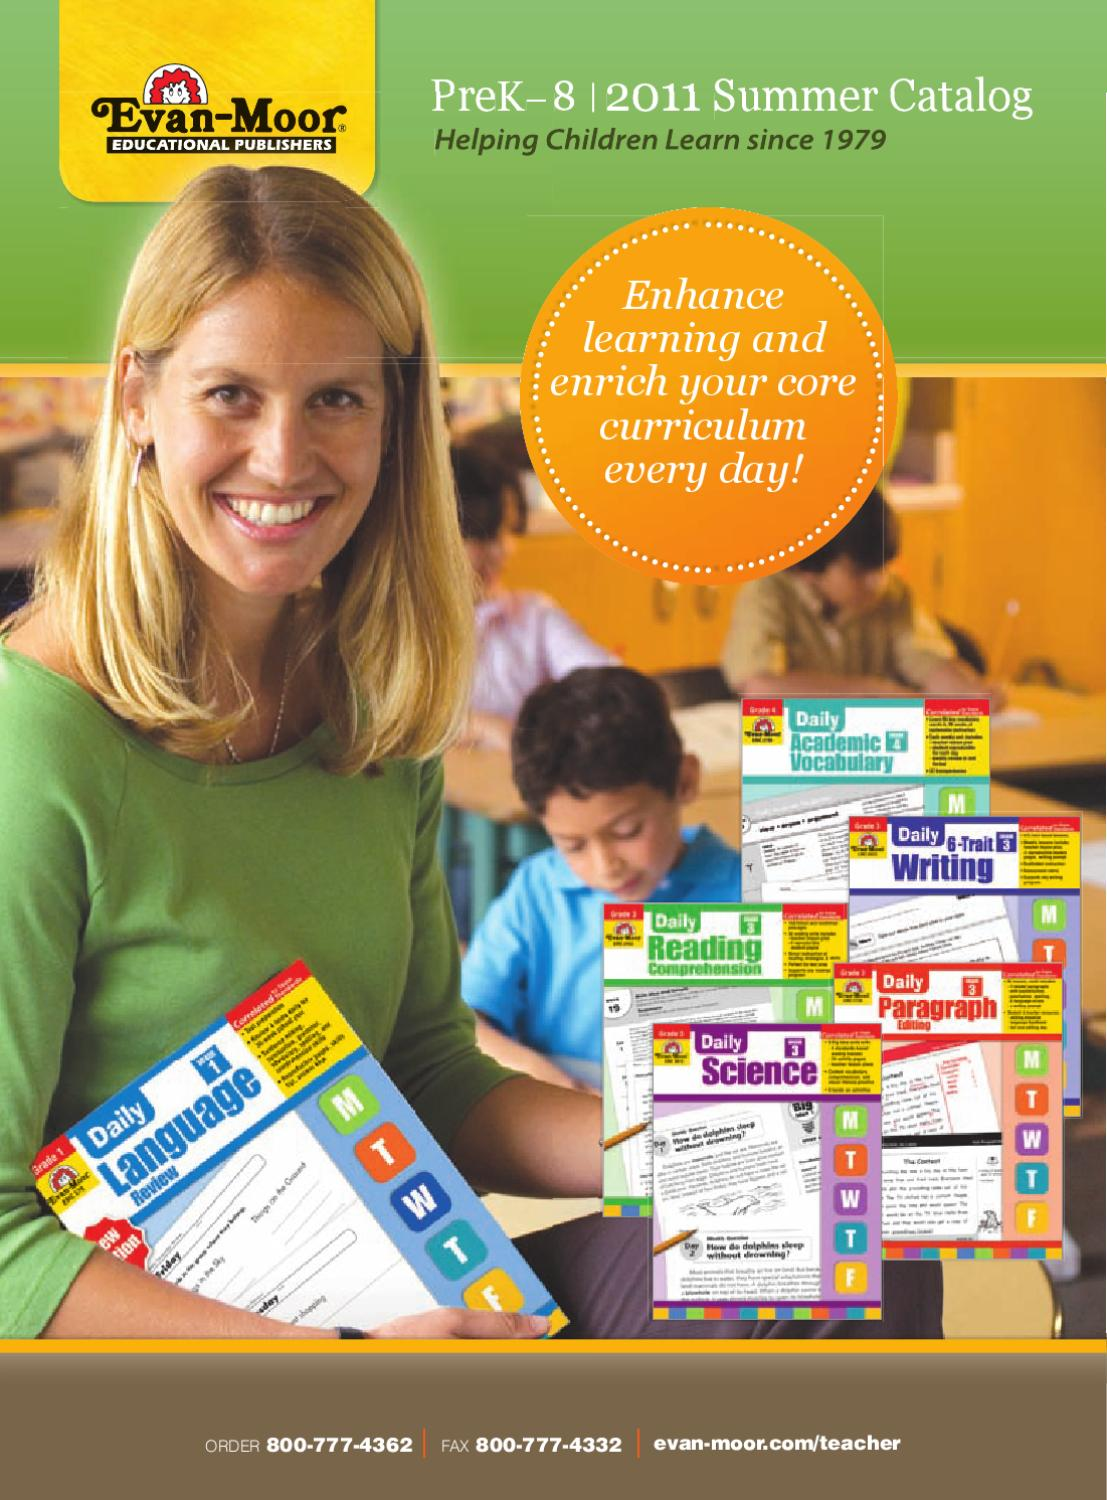 hight resolution of August 2011 Catalog by Evan-Moor Educational Publishers - issuu